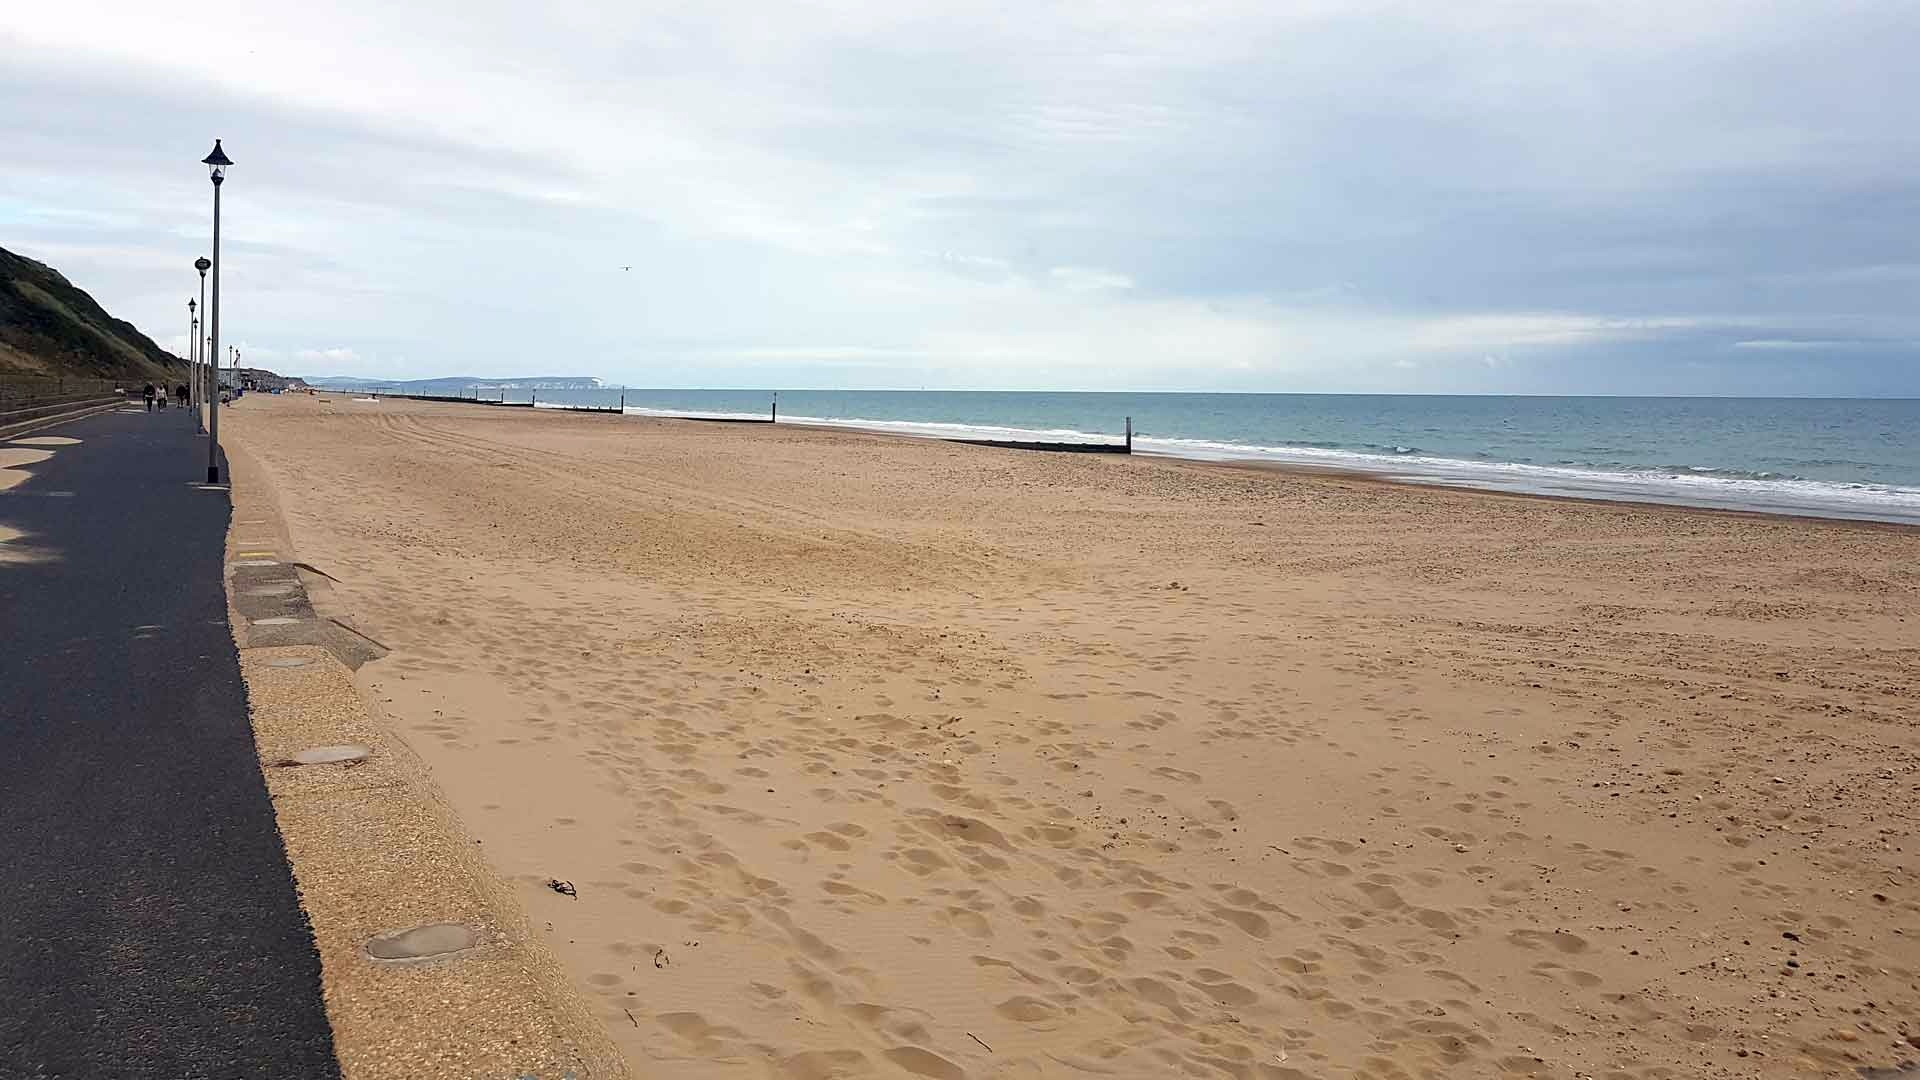 <b>southbourne-on-sea-gallery1.jpg</b> <br/> Promenade from Fishermans Walk Beach Area down to Southbourne with the rails removed